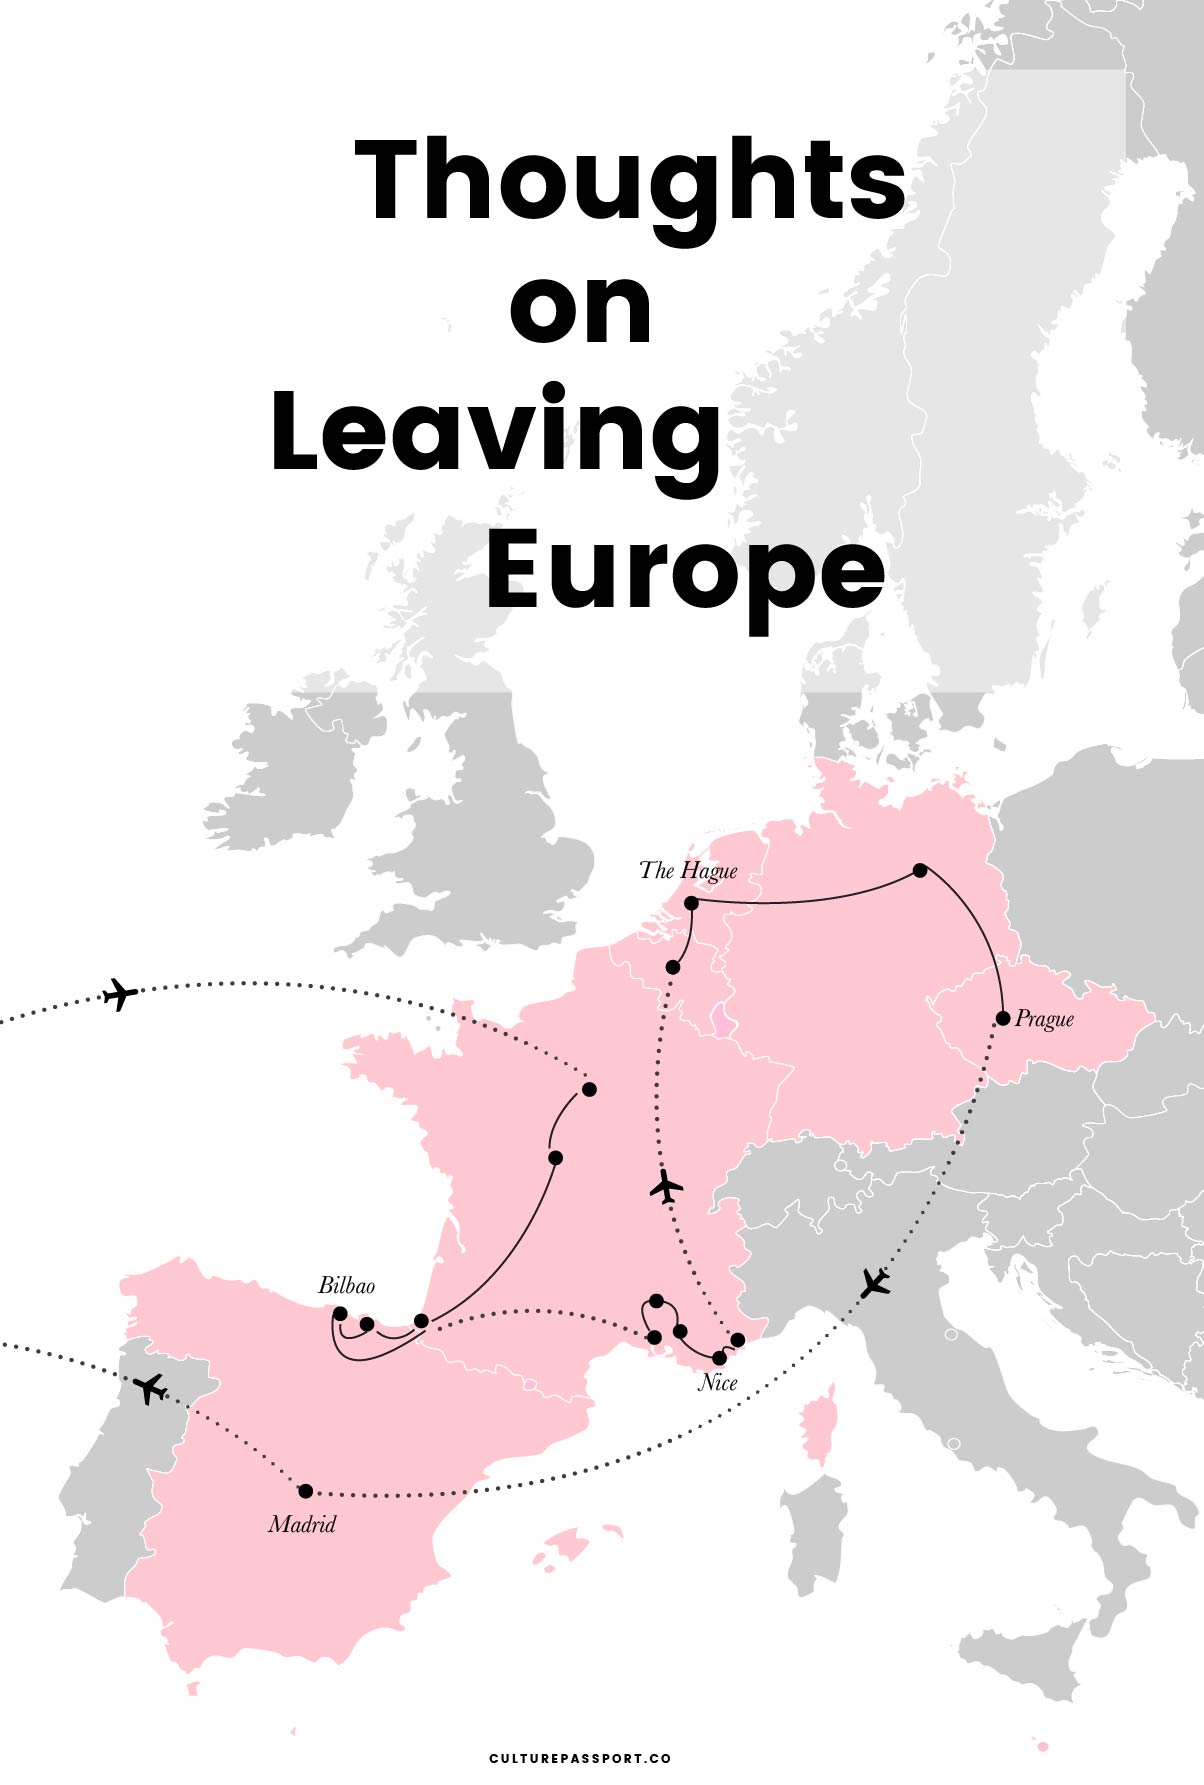 Thoughts on Leaving Europe